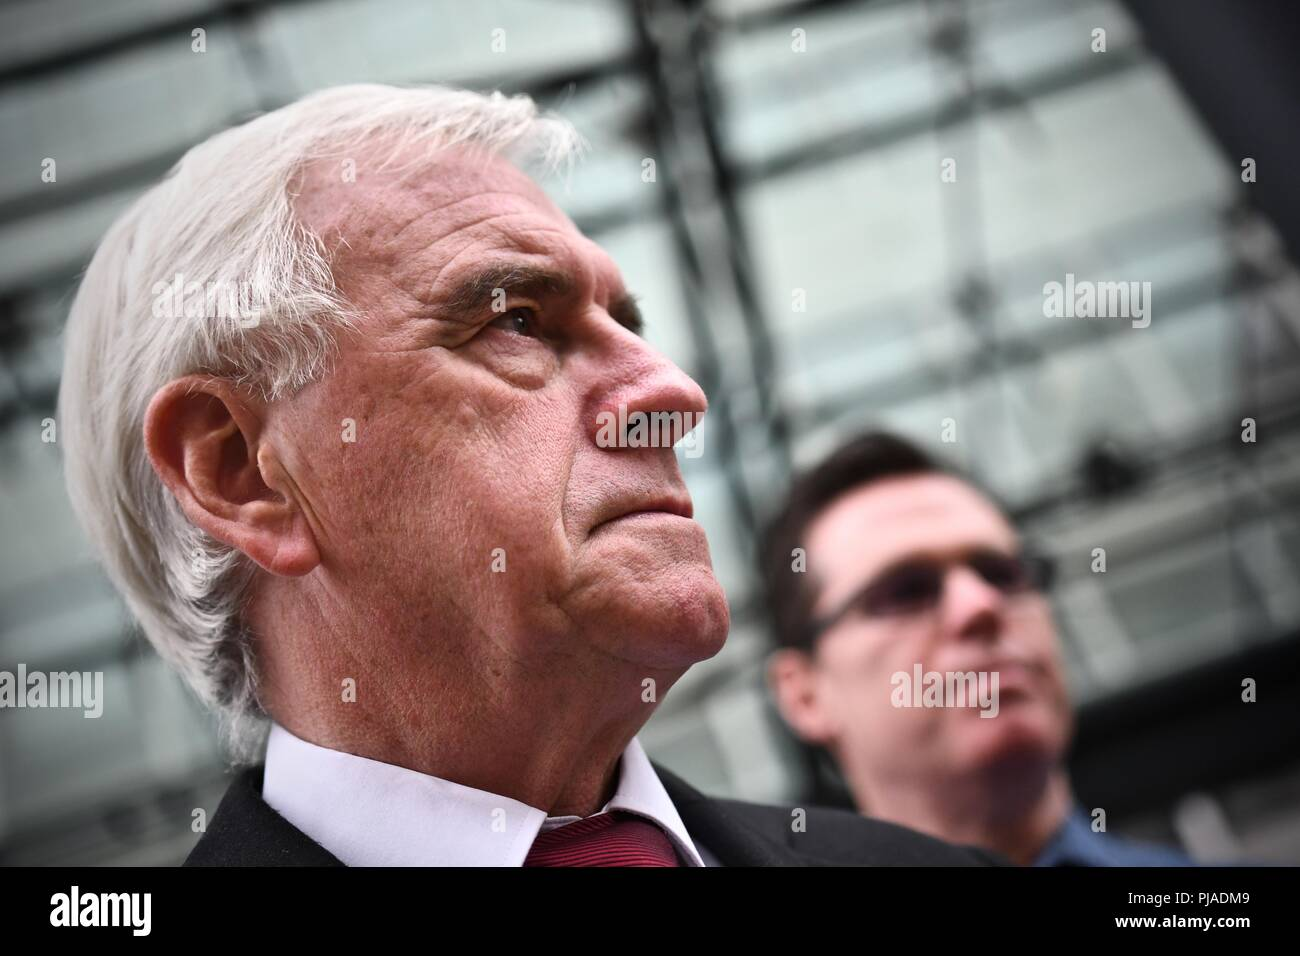 Westminster London United Kingdom - 5th September 2018 - PCS BEIS Living Wage Demo outside the Ministry Of Justice lead By John McDonnell MP. Aim to bring attention to the absence of living wage for cleaners in the Ministry of Justice. Credit: Stuart Mitchell/Alamy Live News Stock Photo